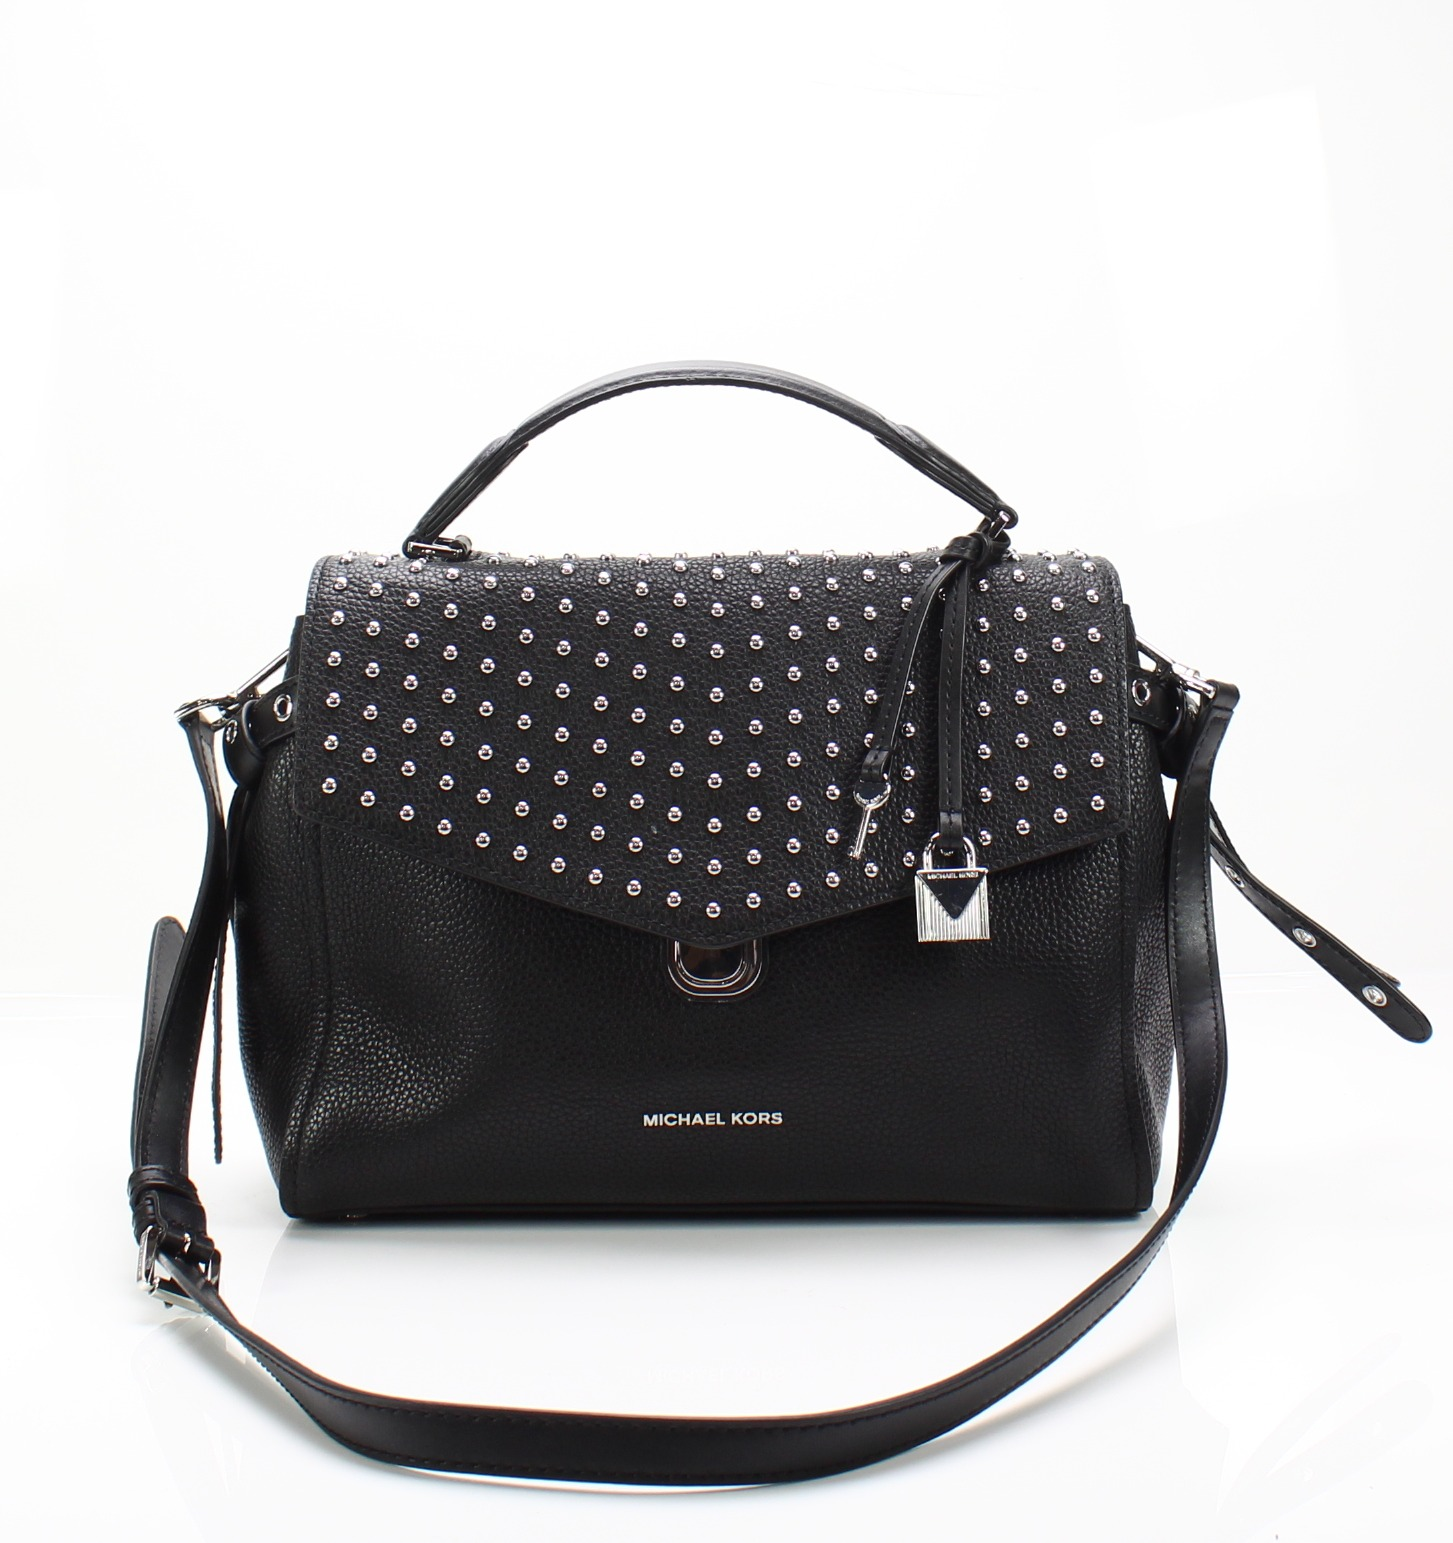 f5b533612391 ... inexpensive details about michael kors black silver studded pebble  leather bristol satchel bag 368 012 66b42